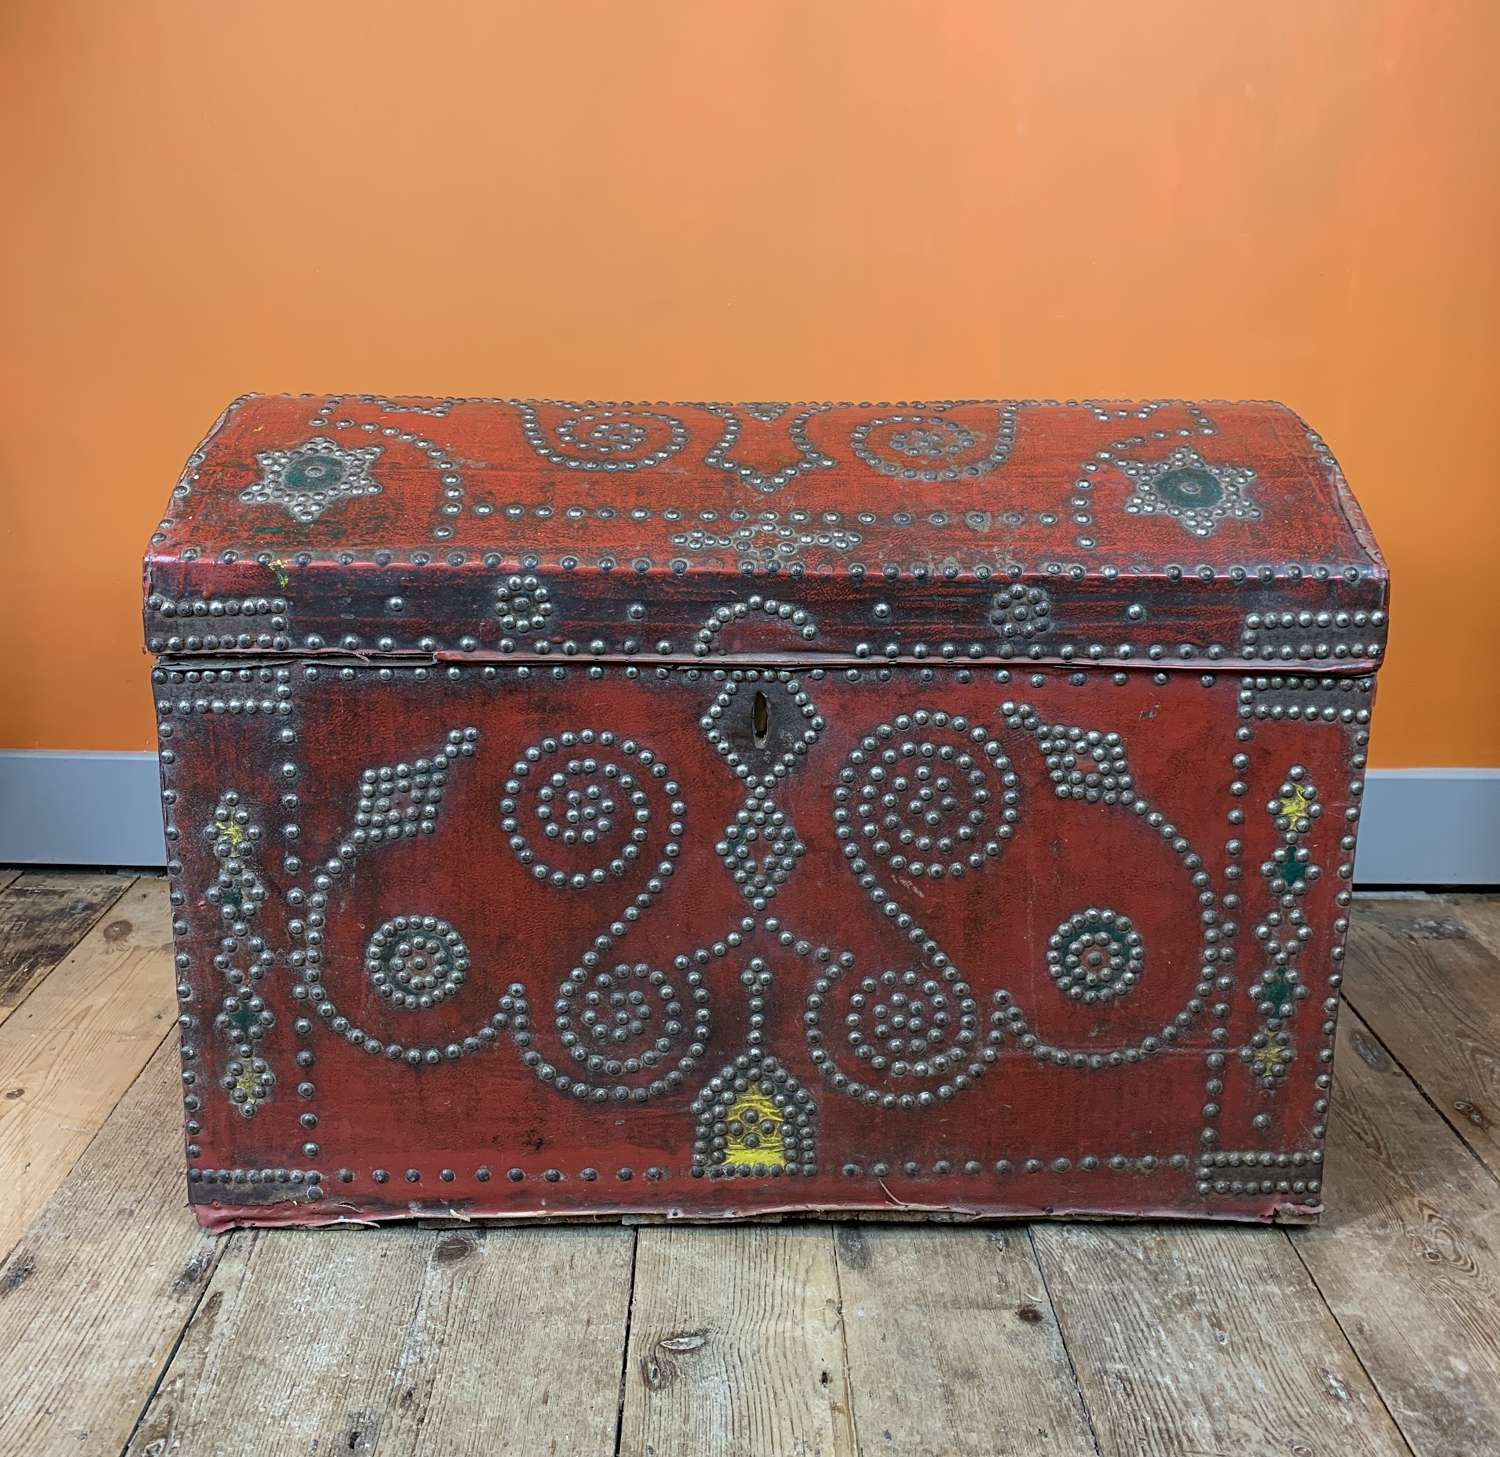 Antique Cloth Covered Carriage Trunk with Studded Decoration